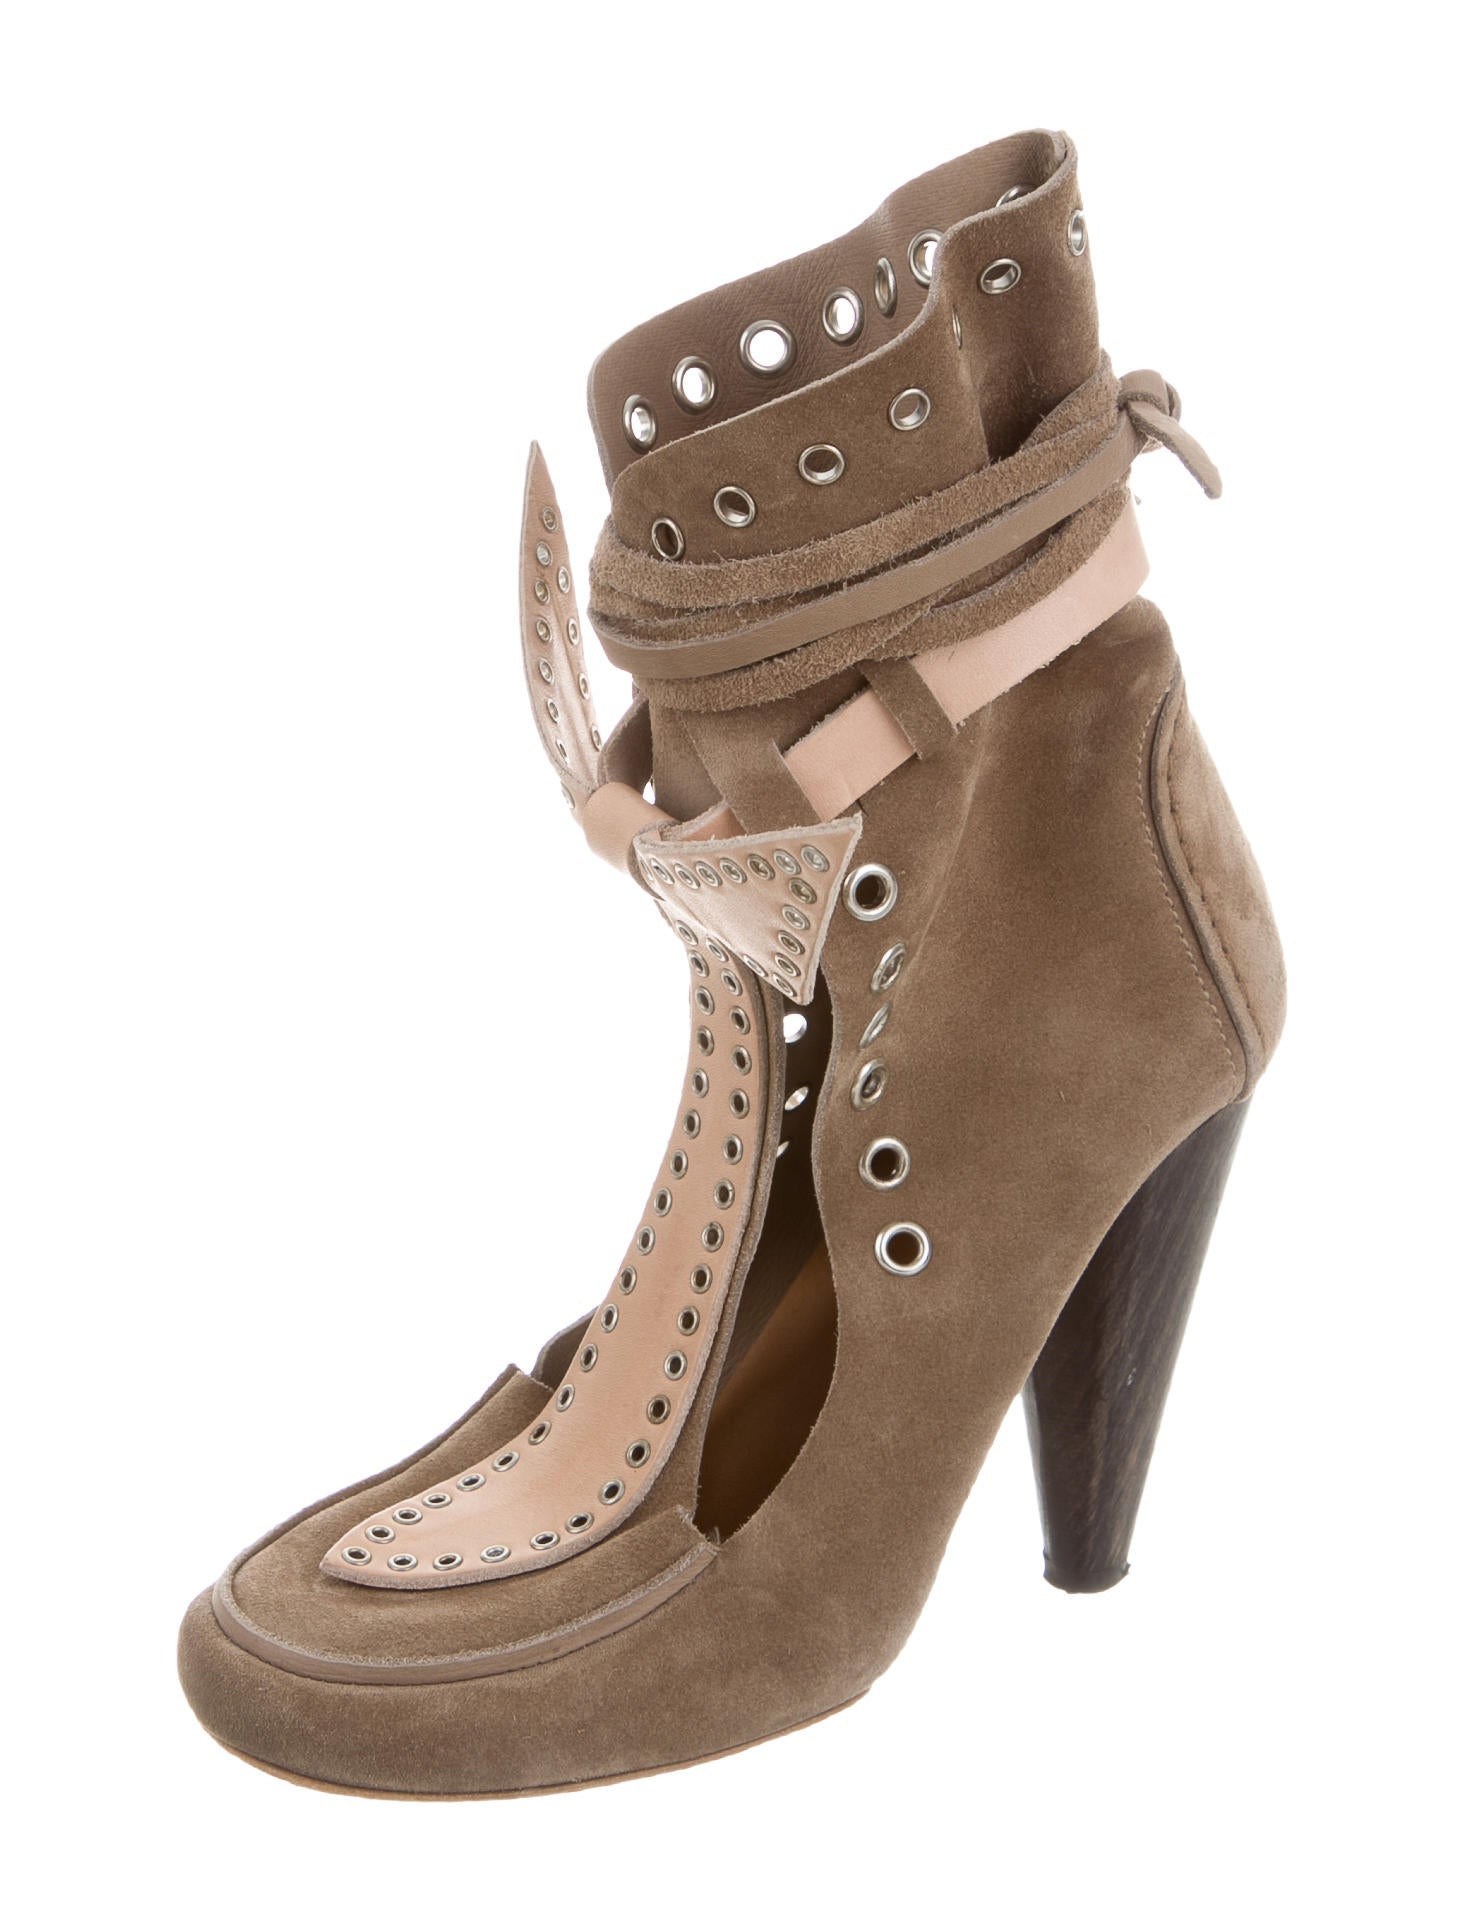 marant suede lace up ankle boots shoes isa40021